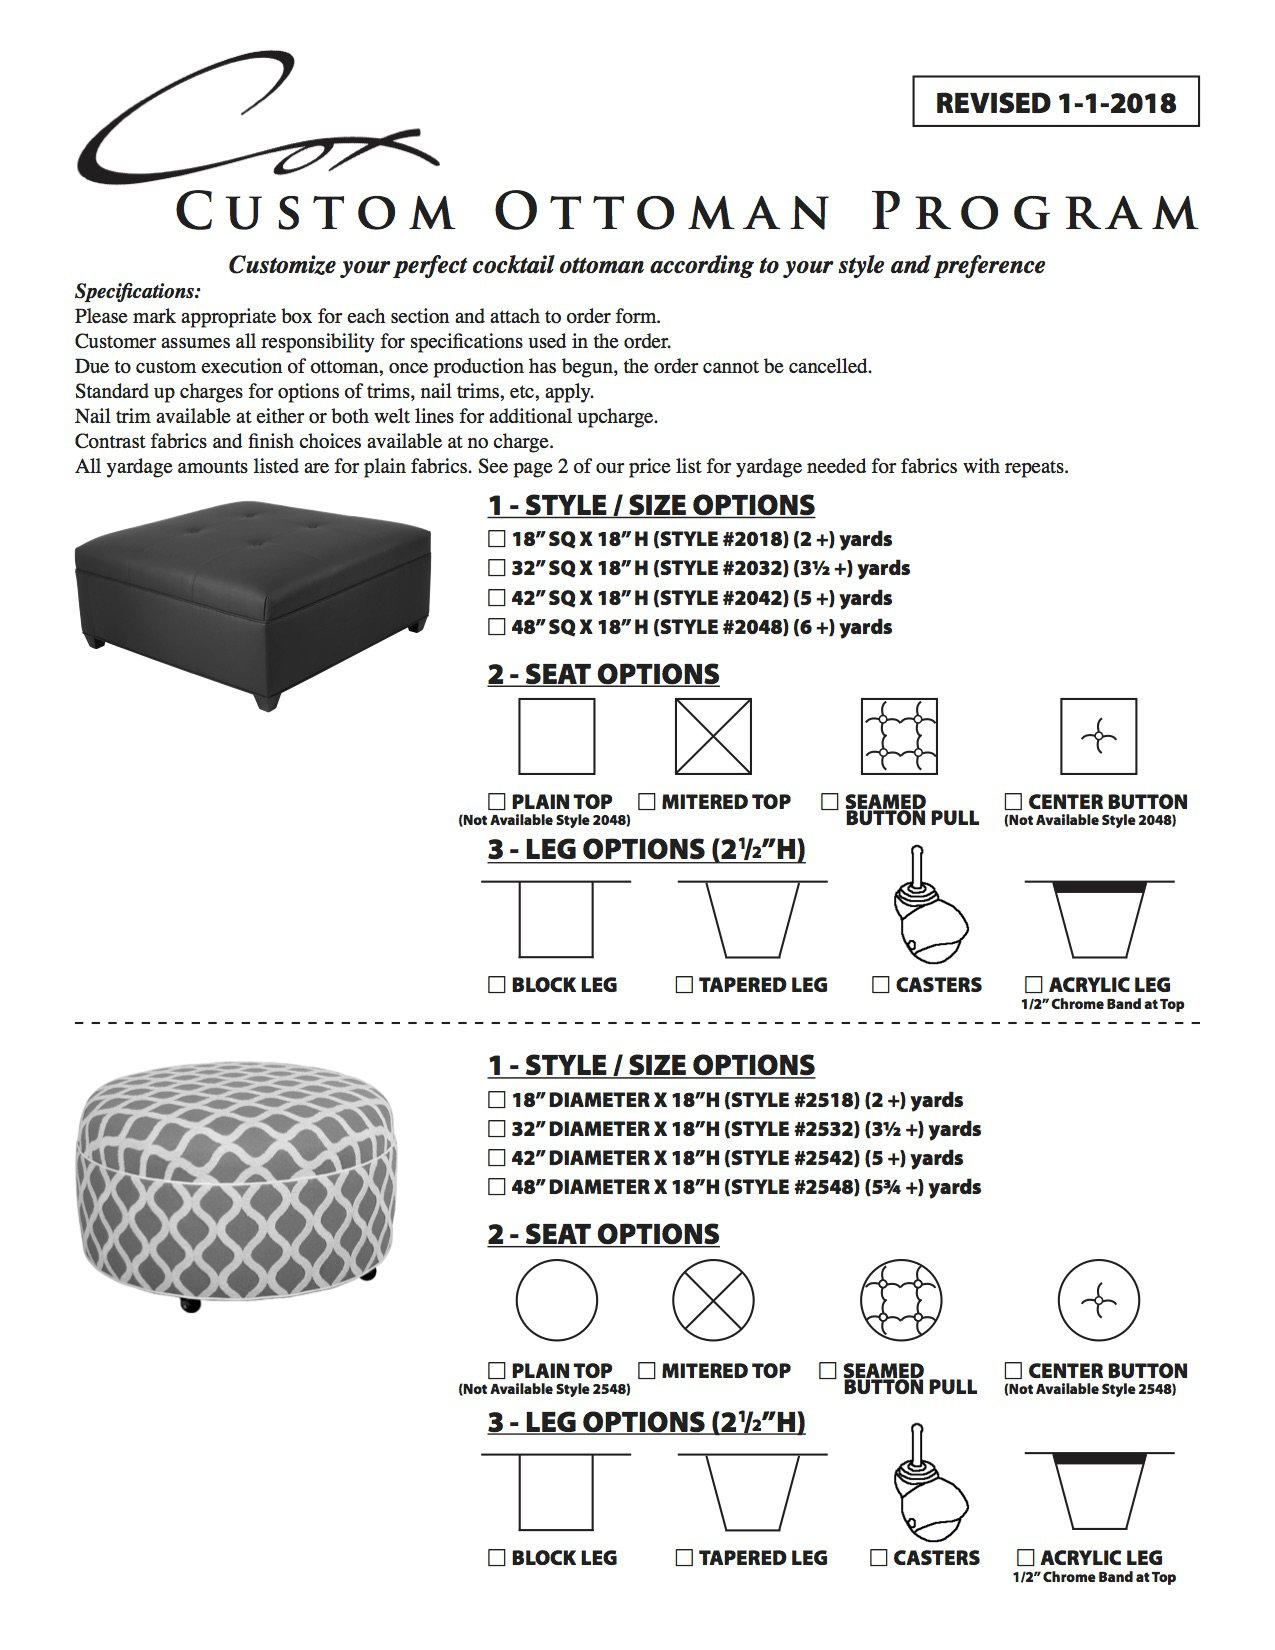 revised ott program lower rez for web.jpg